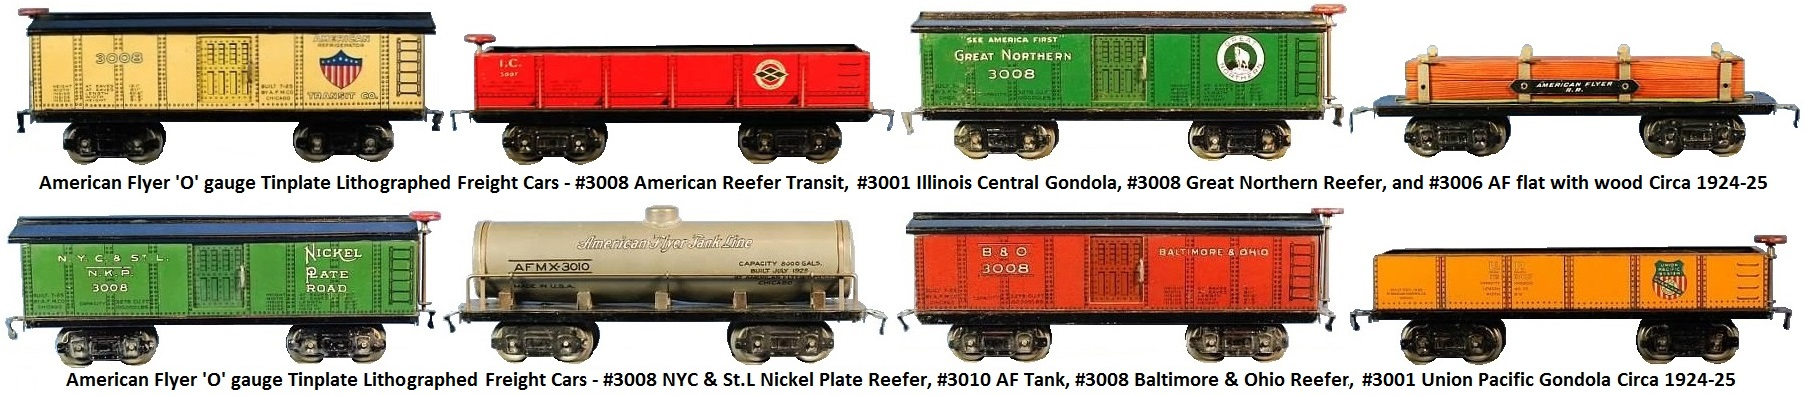 American Flyer 'O' gauge tinplate lithographed 9½ inch freight cars - #3008 Reefers, #3010 Tank car, #3006 flat car and #3001 series gondolas circa 1924-25